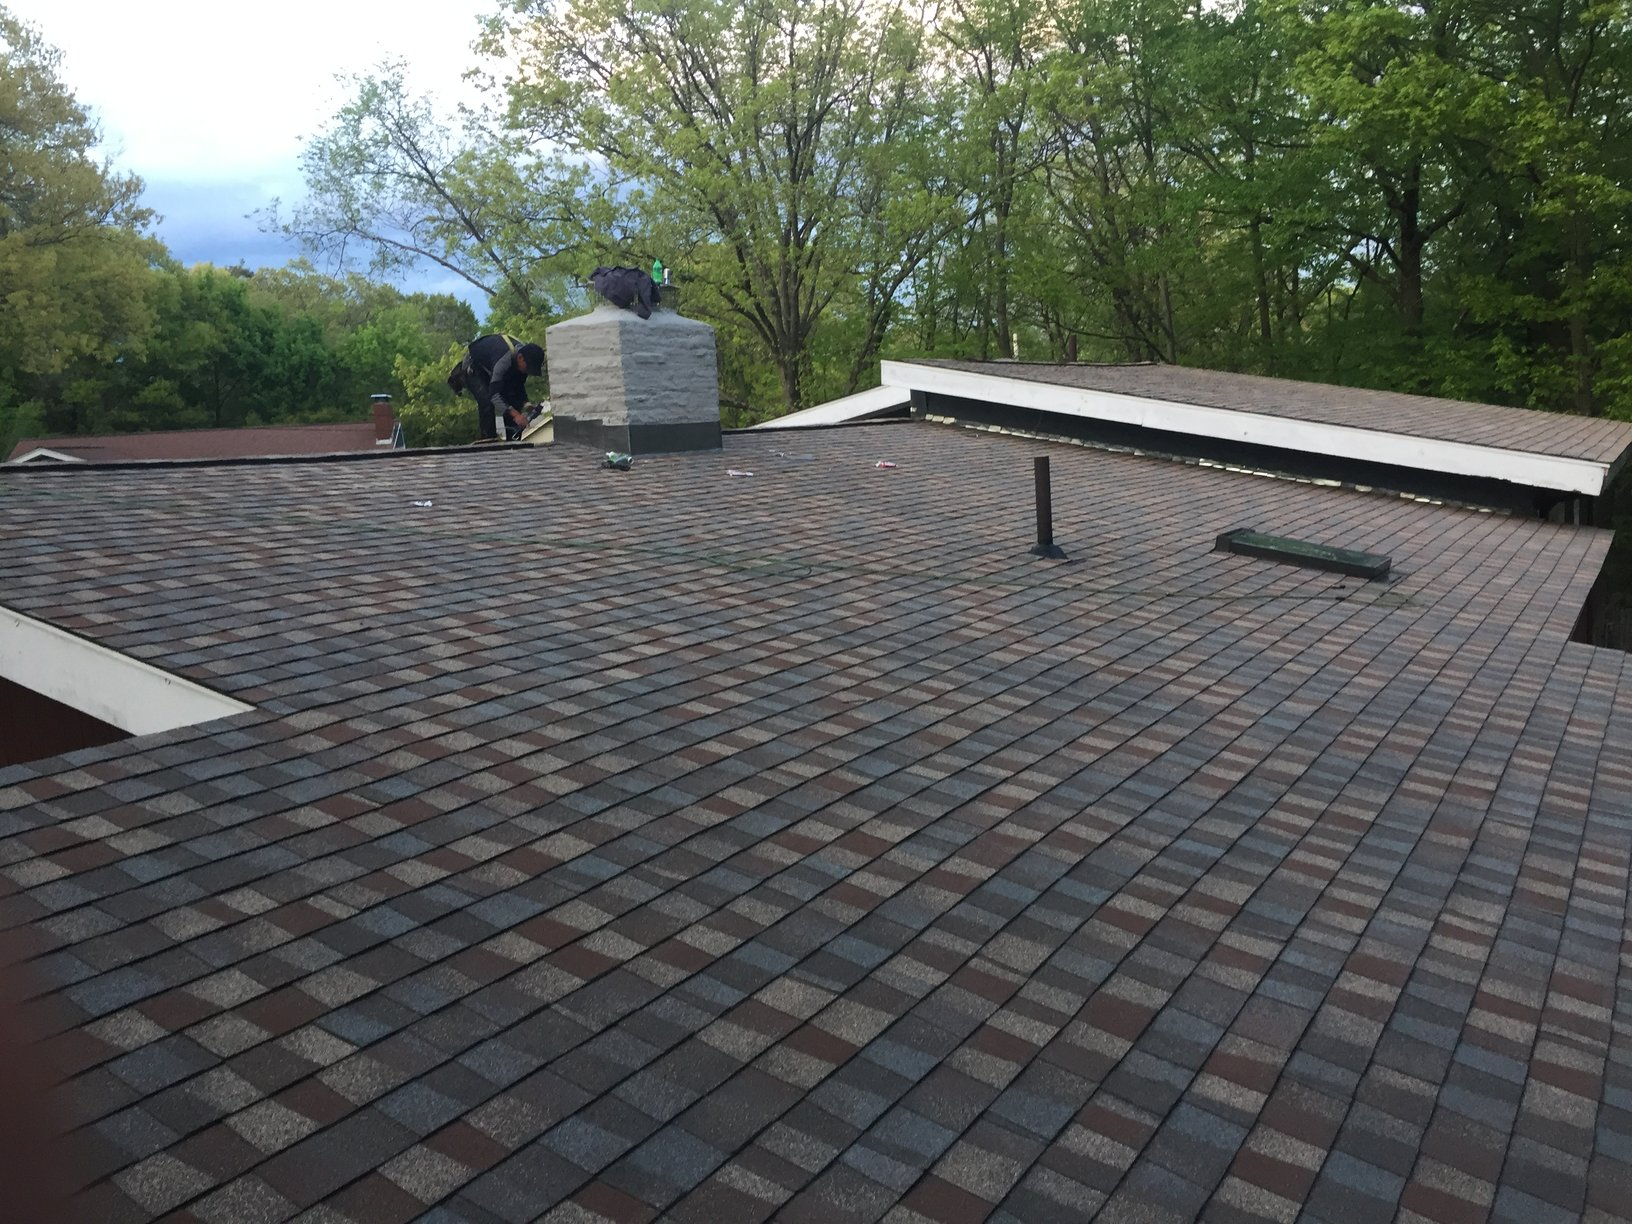 completed rooftop replacement project